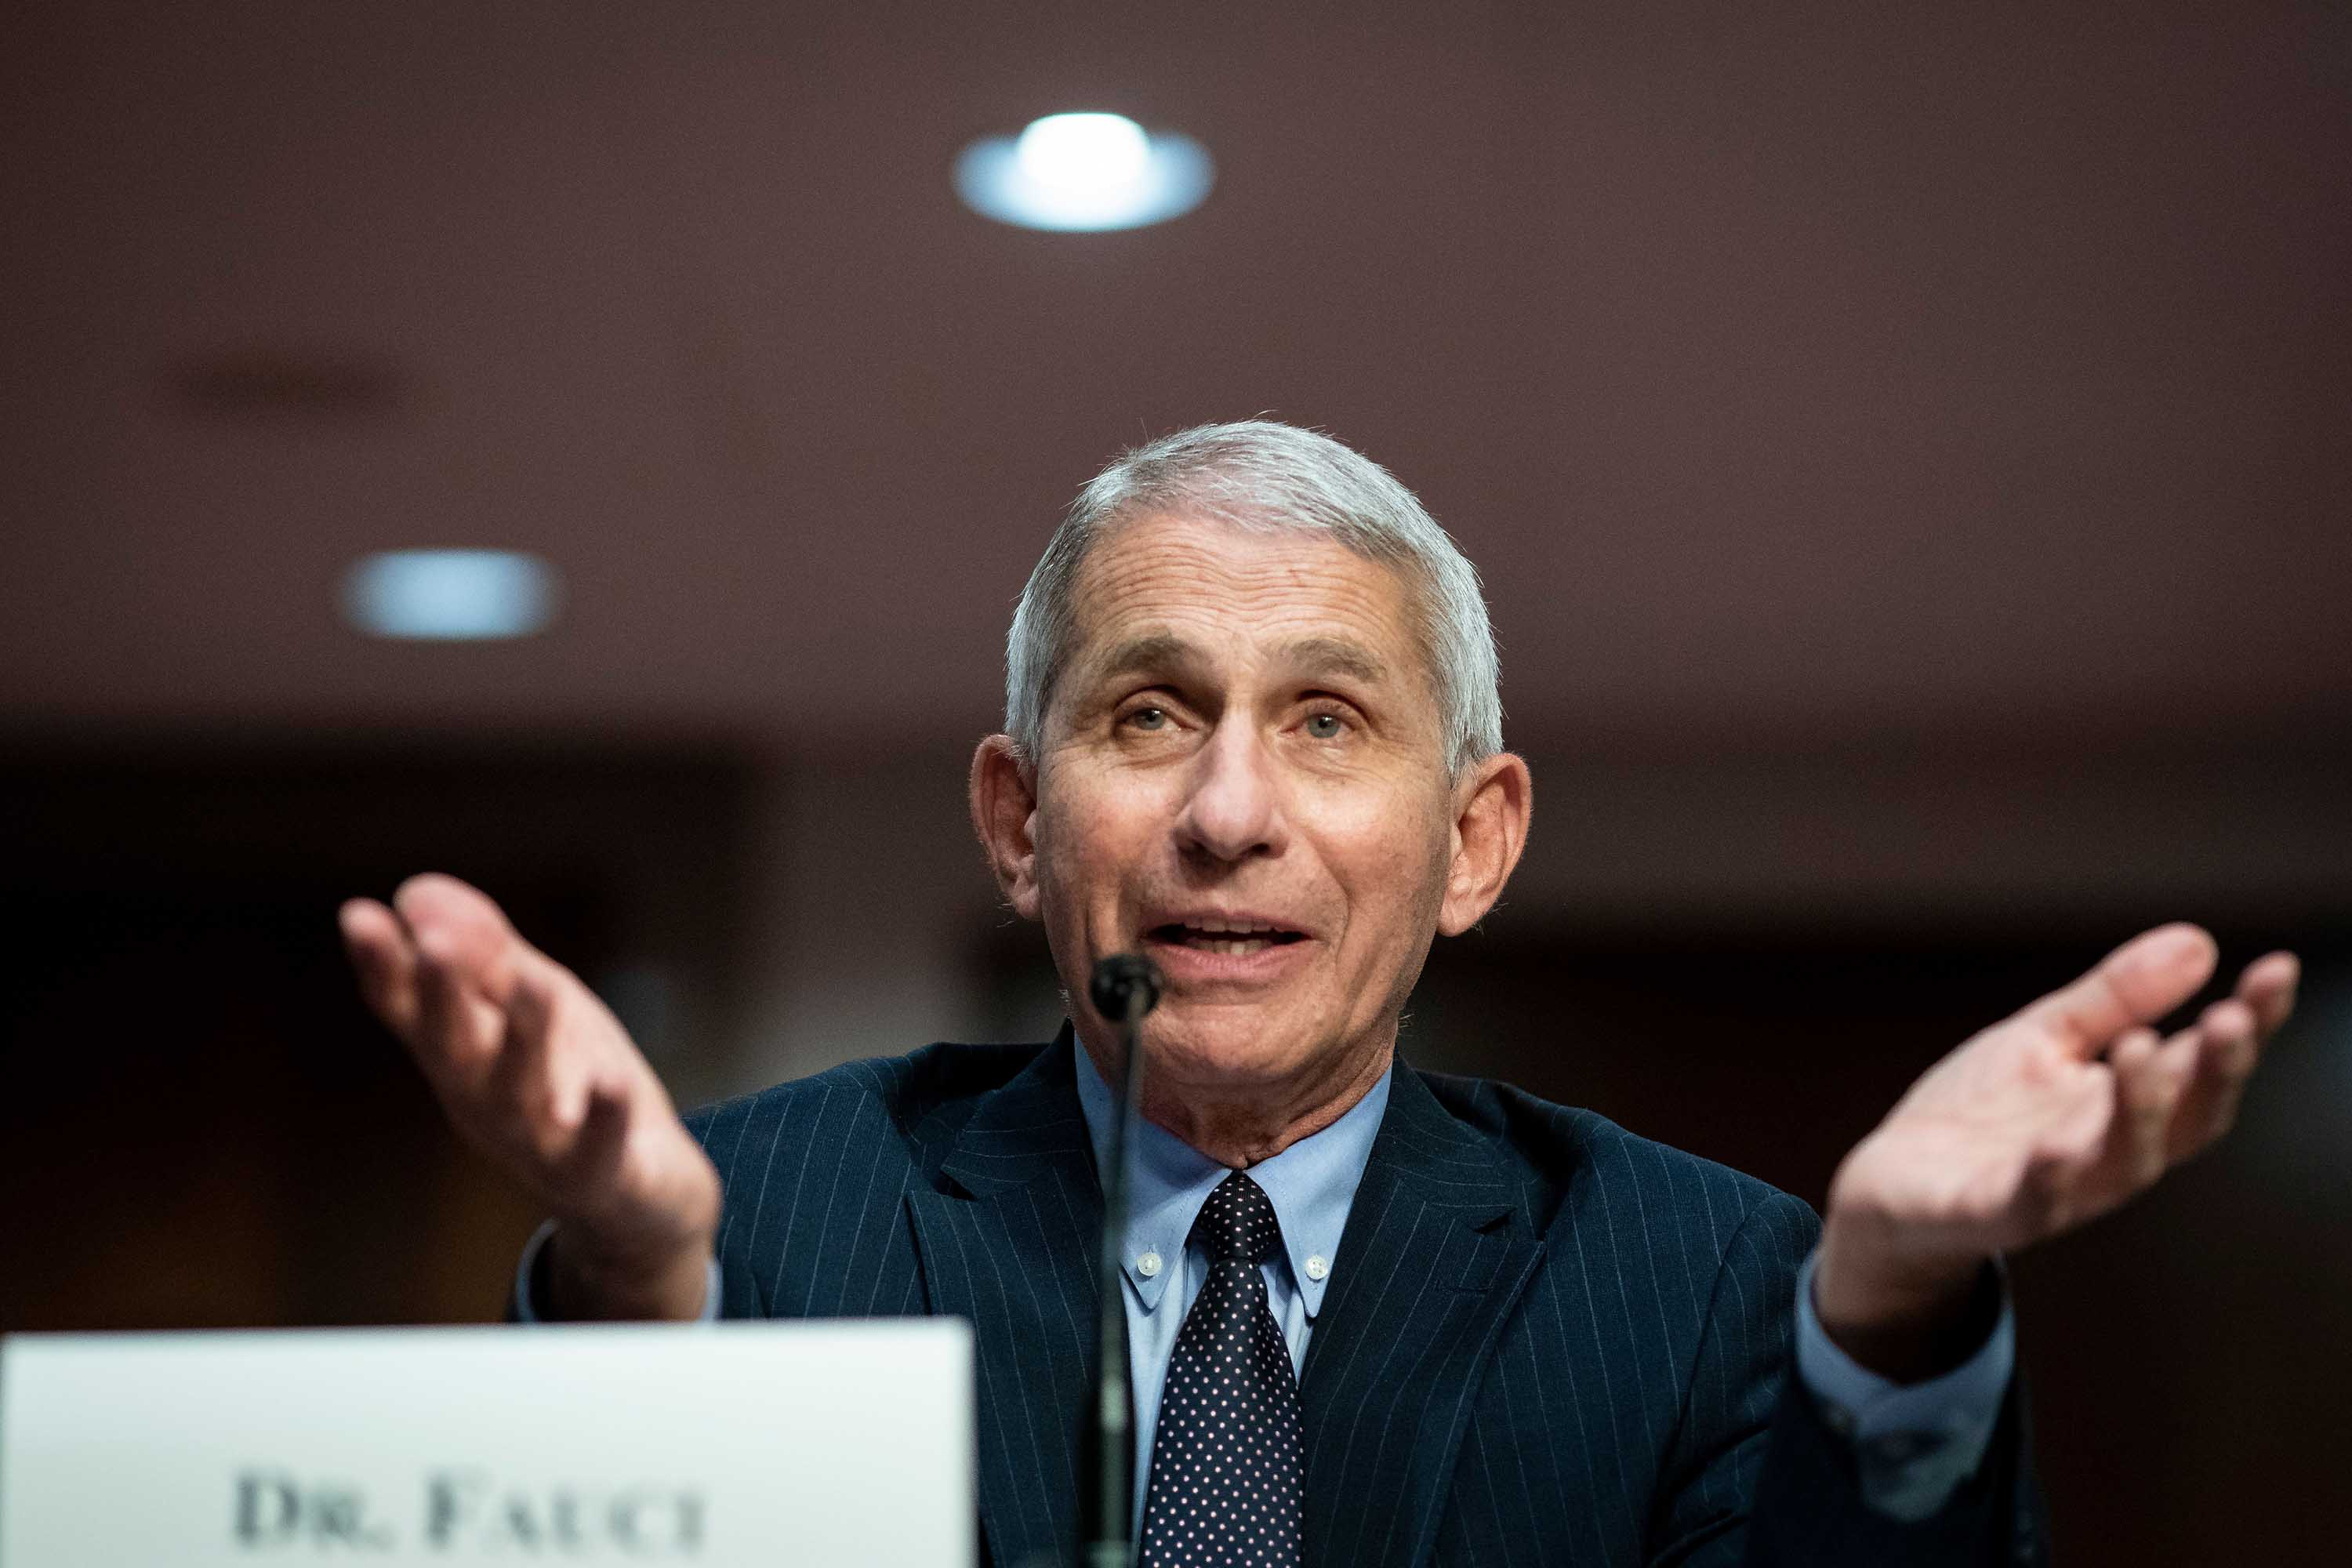 Dr. Anthony Fauci, Director of the National Institute of Allergy and Infectious Diseases, speaks during a Senate hearing in Washington on June 30.